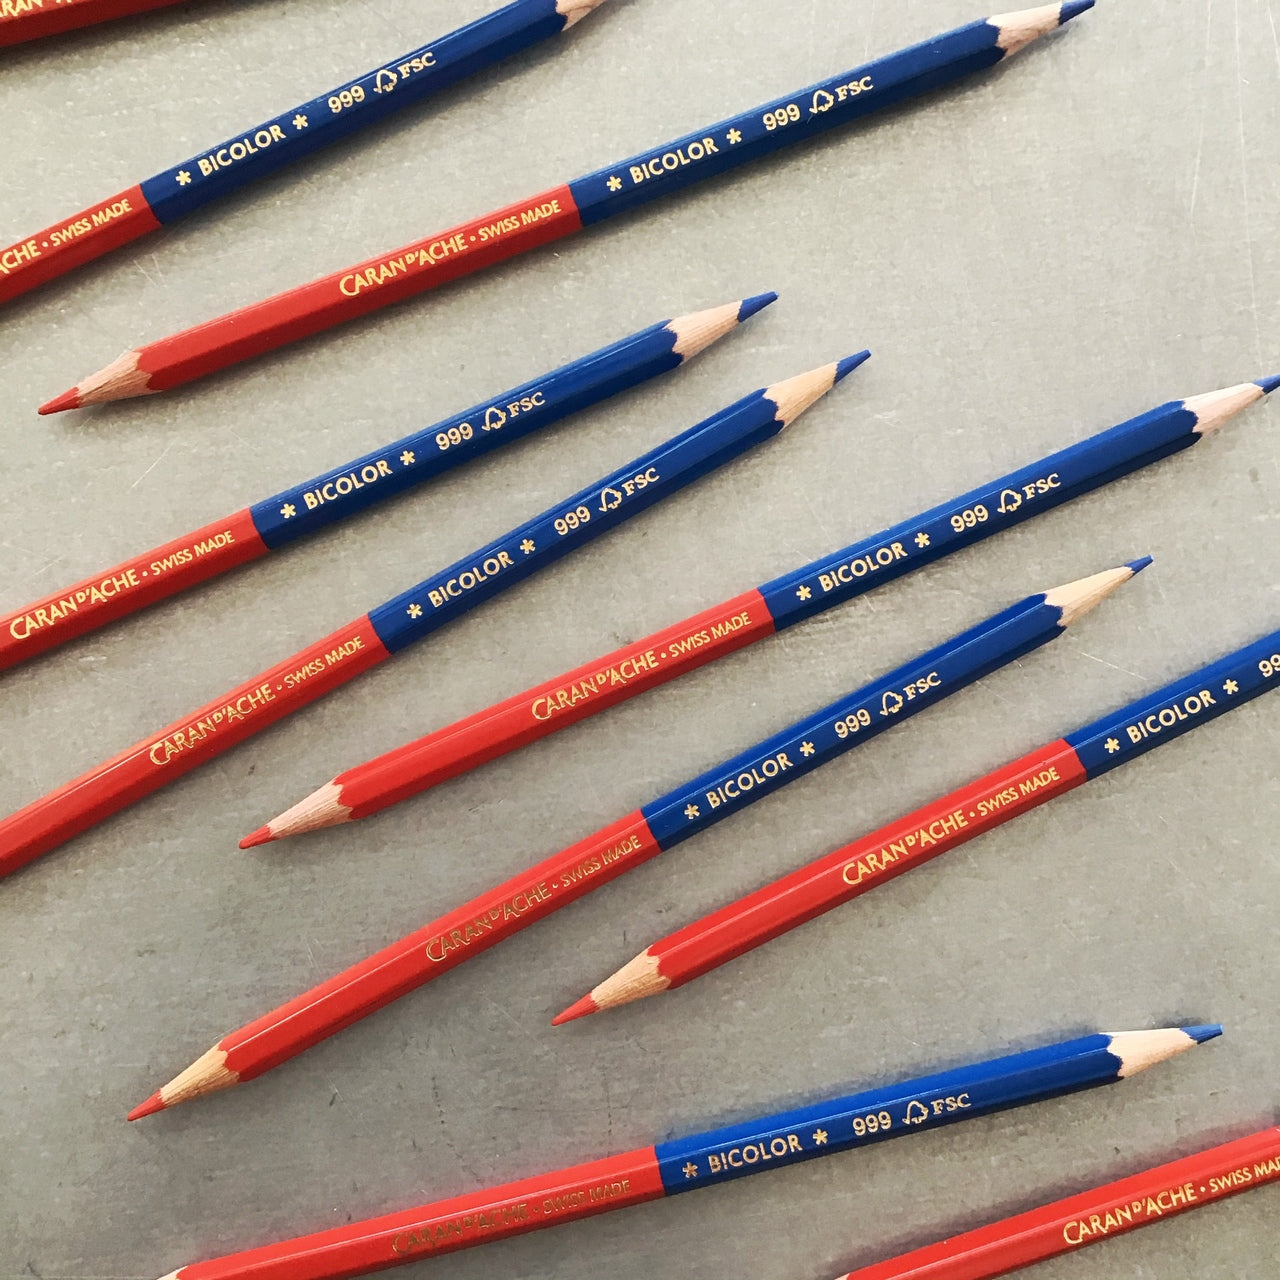 Caran d'Ache bicolor pencil is available as single pencil or in a box of 12.